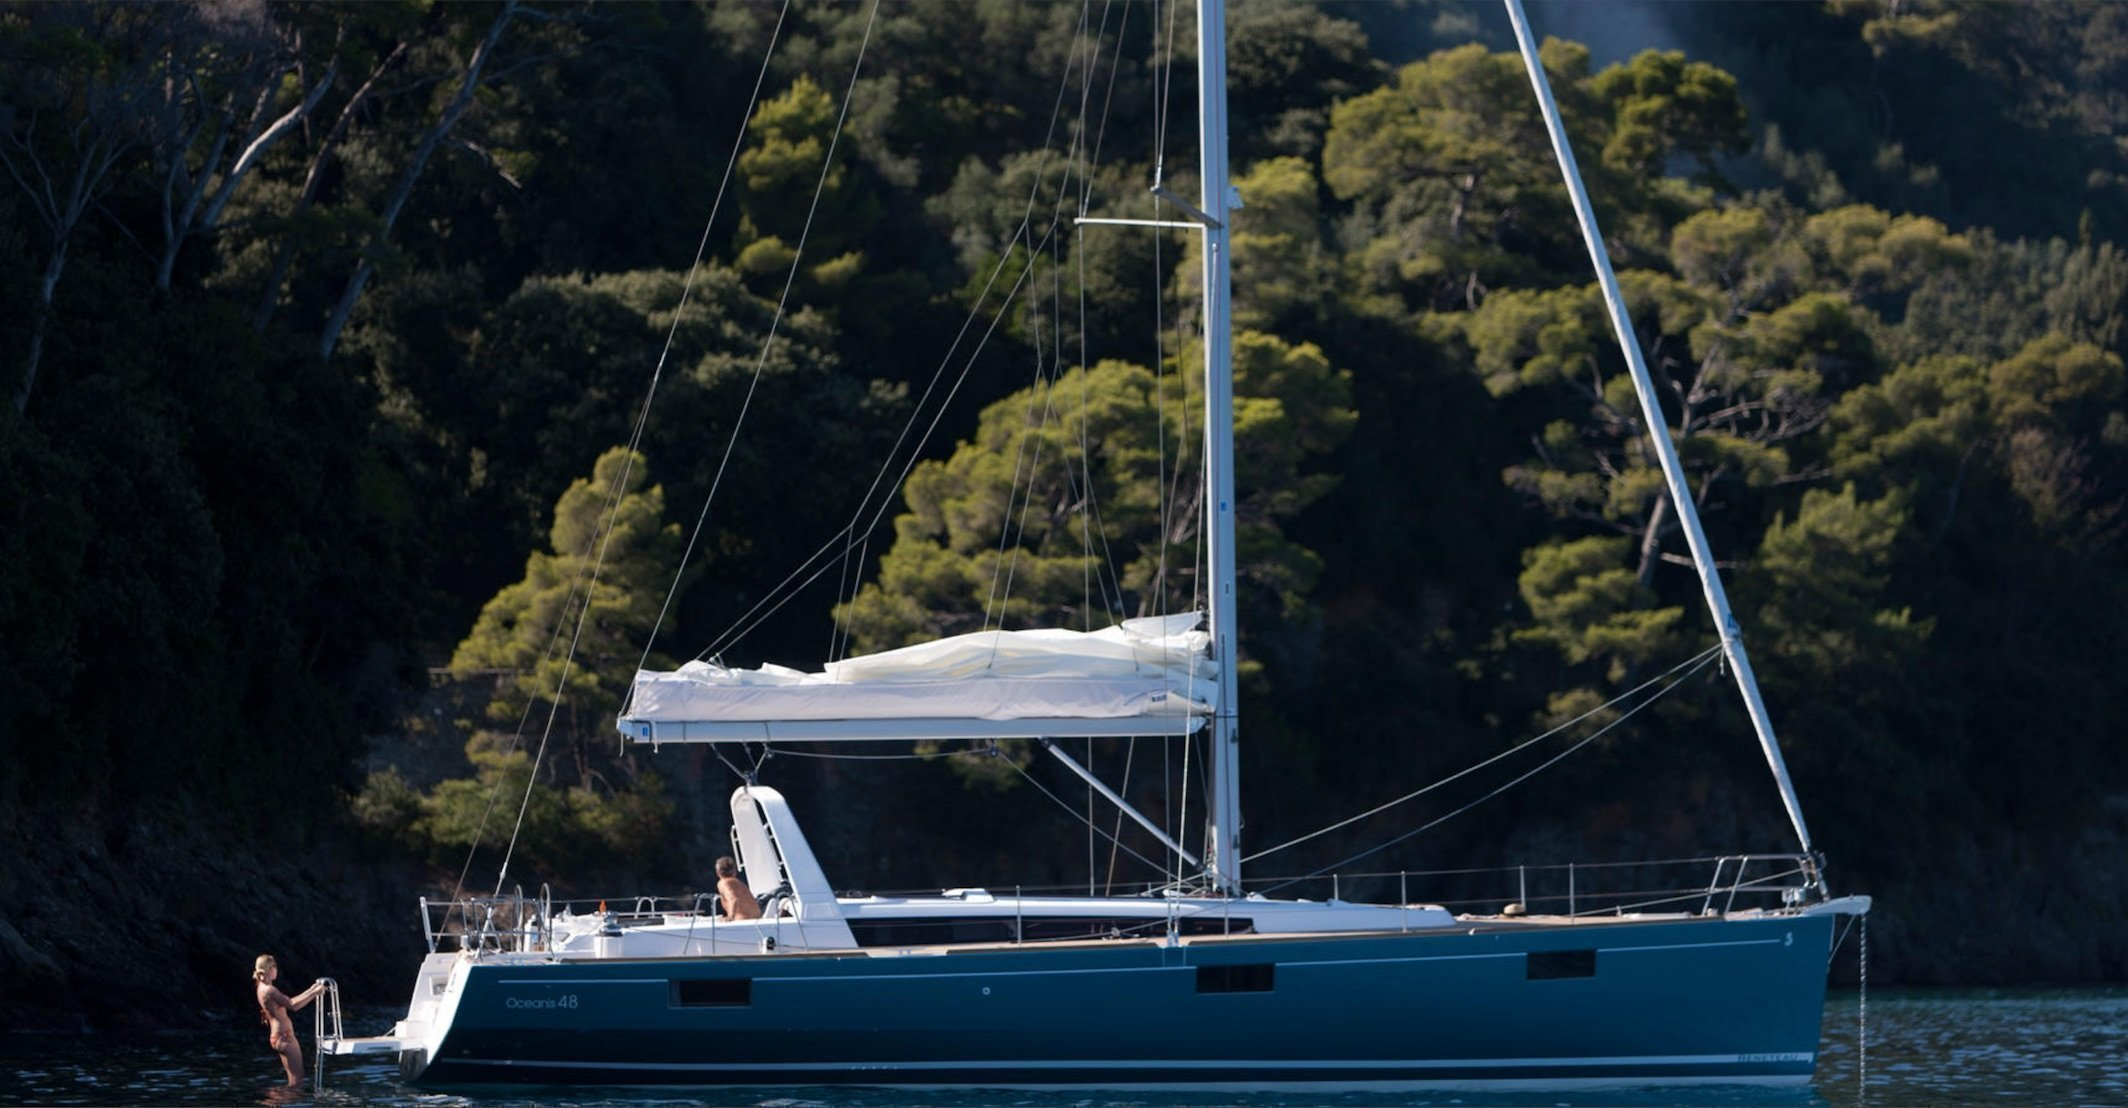 Oceanis 48 (Nabucco. Private Charter (8 pax) FULLY CREWED, ALL EXPENSES INCLUDED)  - 15